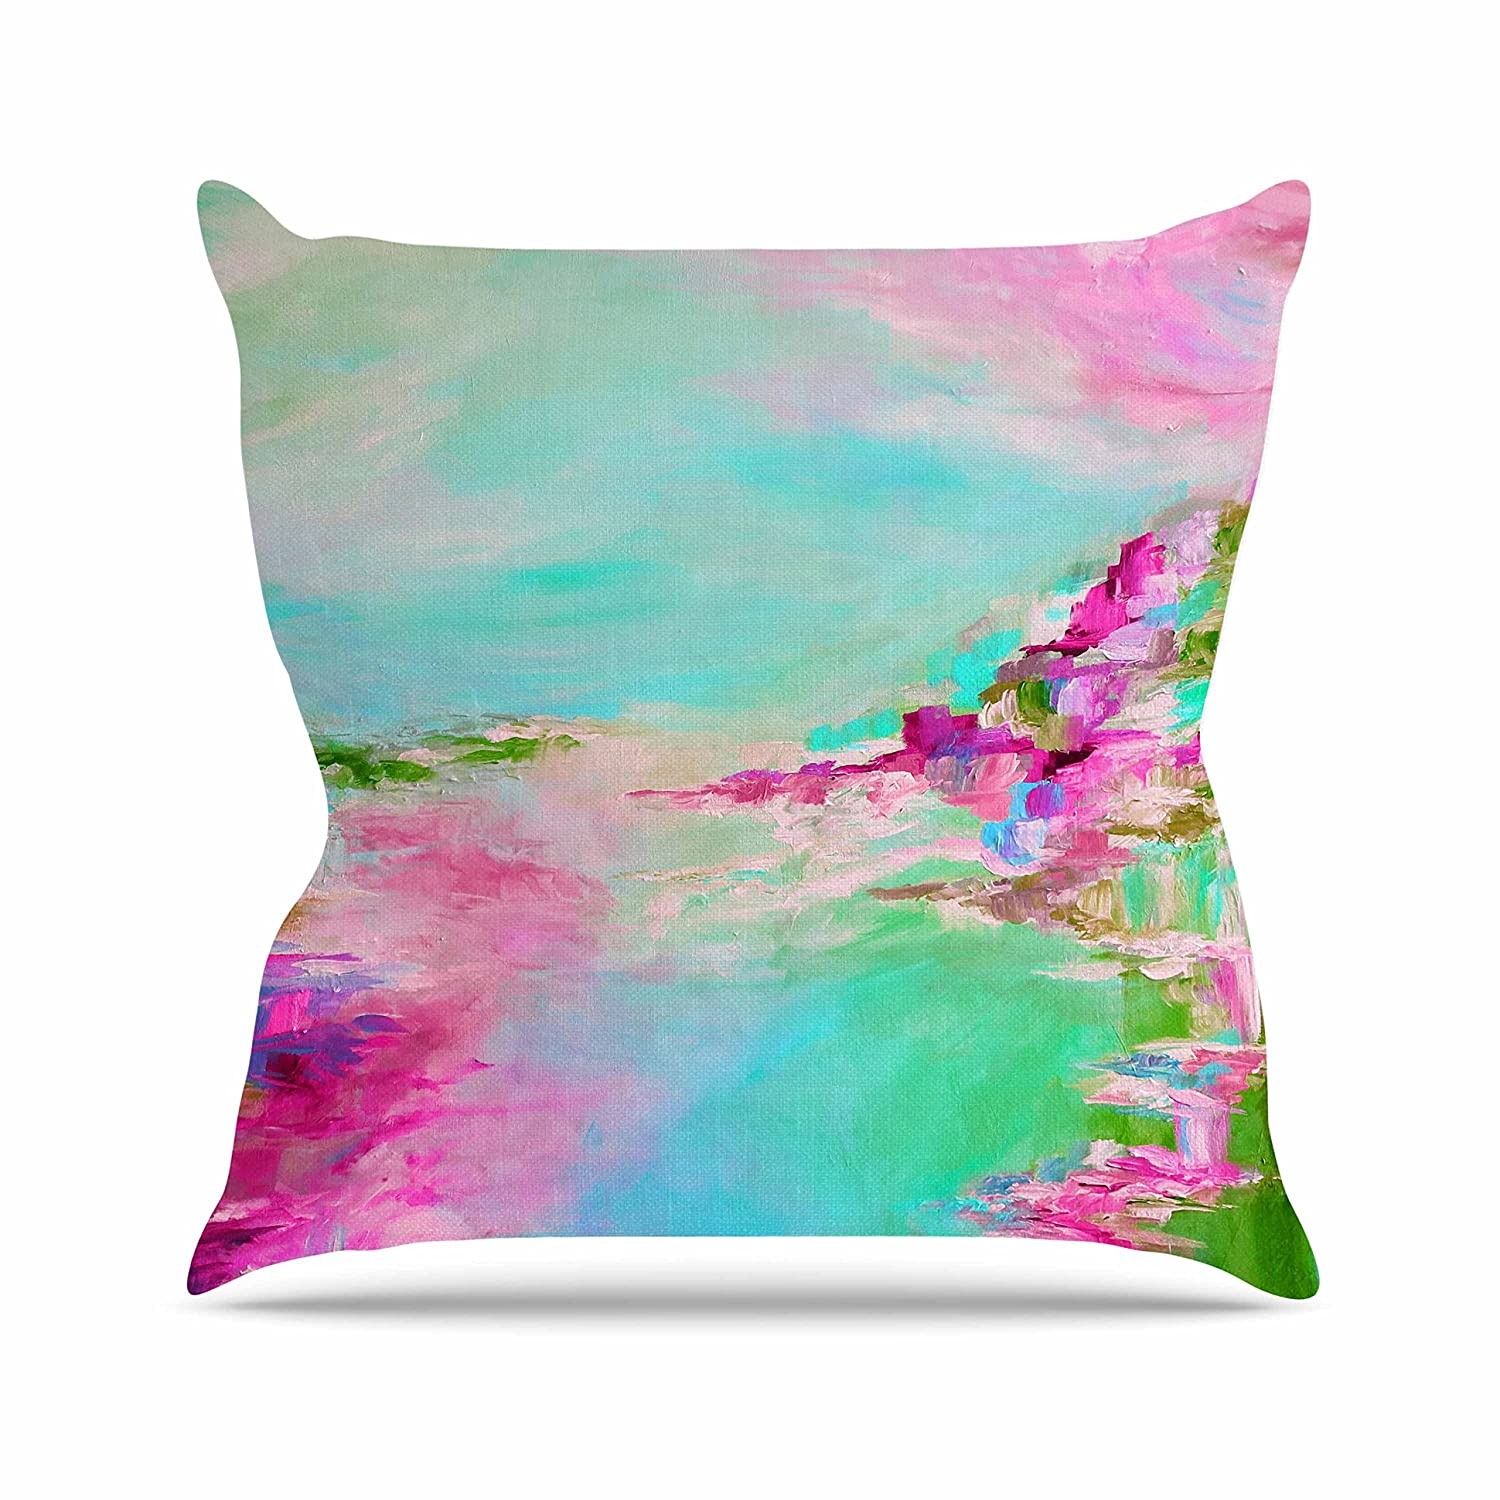 Kess InHouse EBI Emporium Something About The Sea 2 Teal Pink Throw Pillow 16 by 16